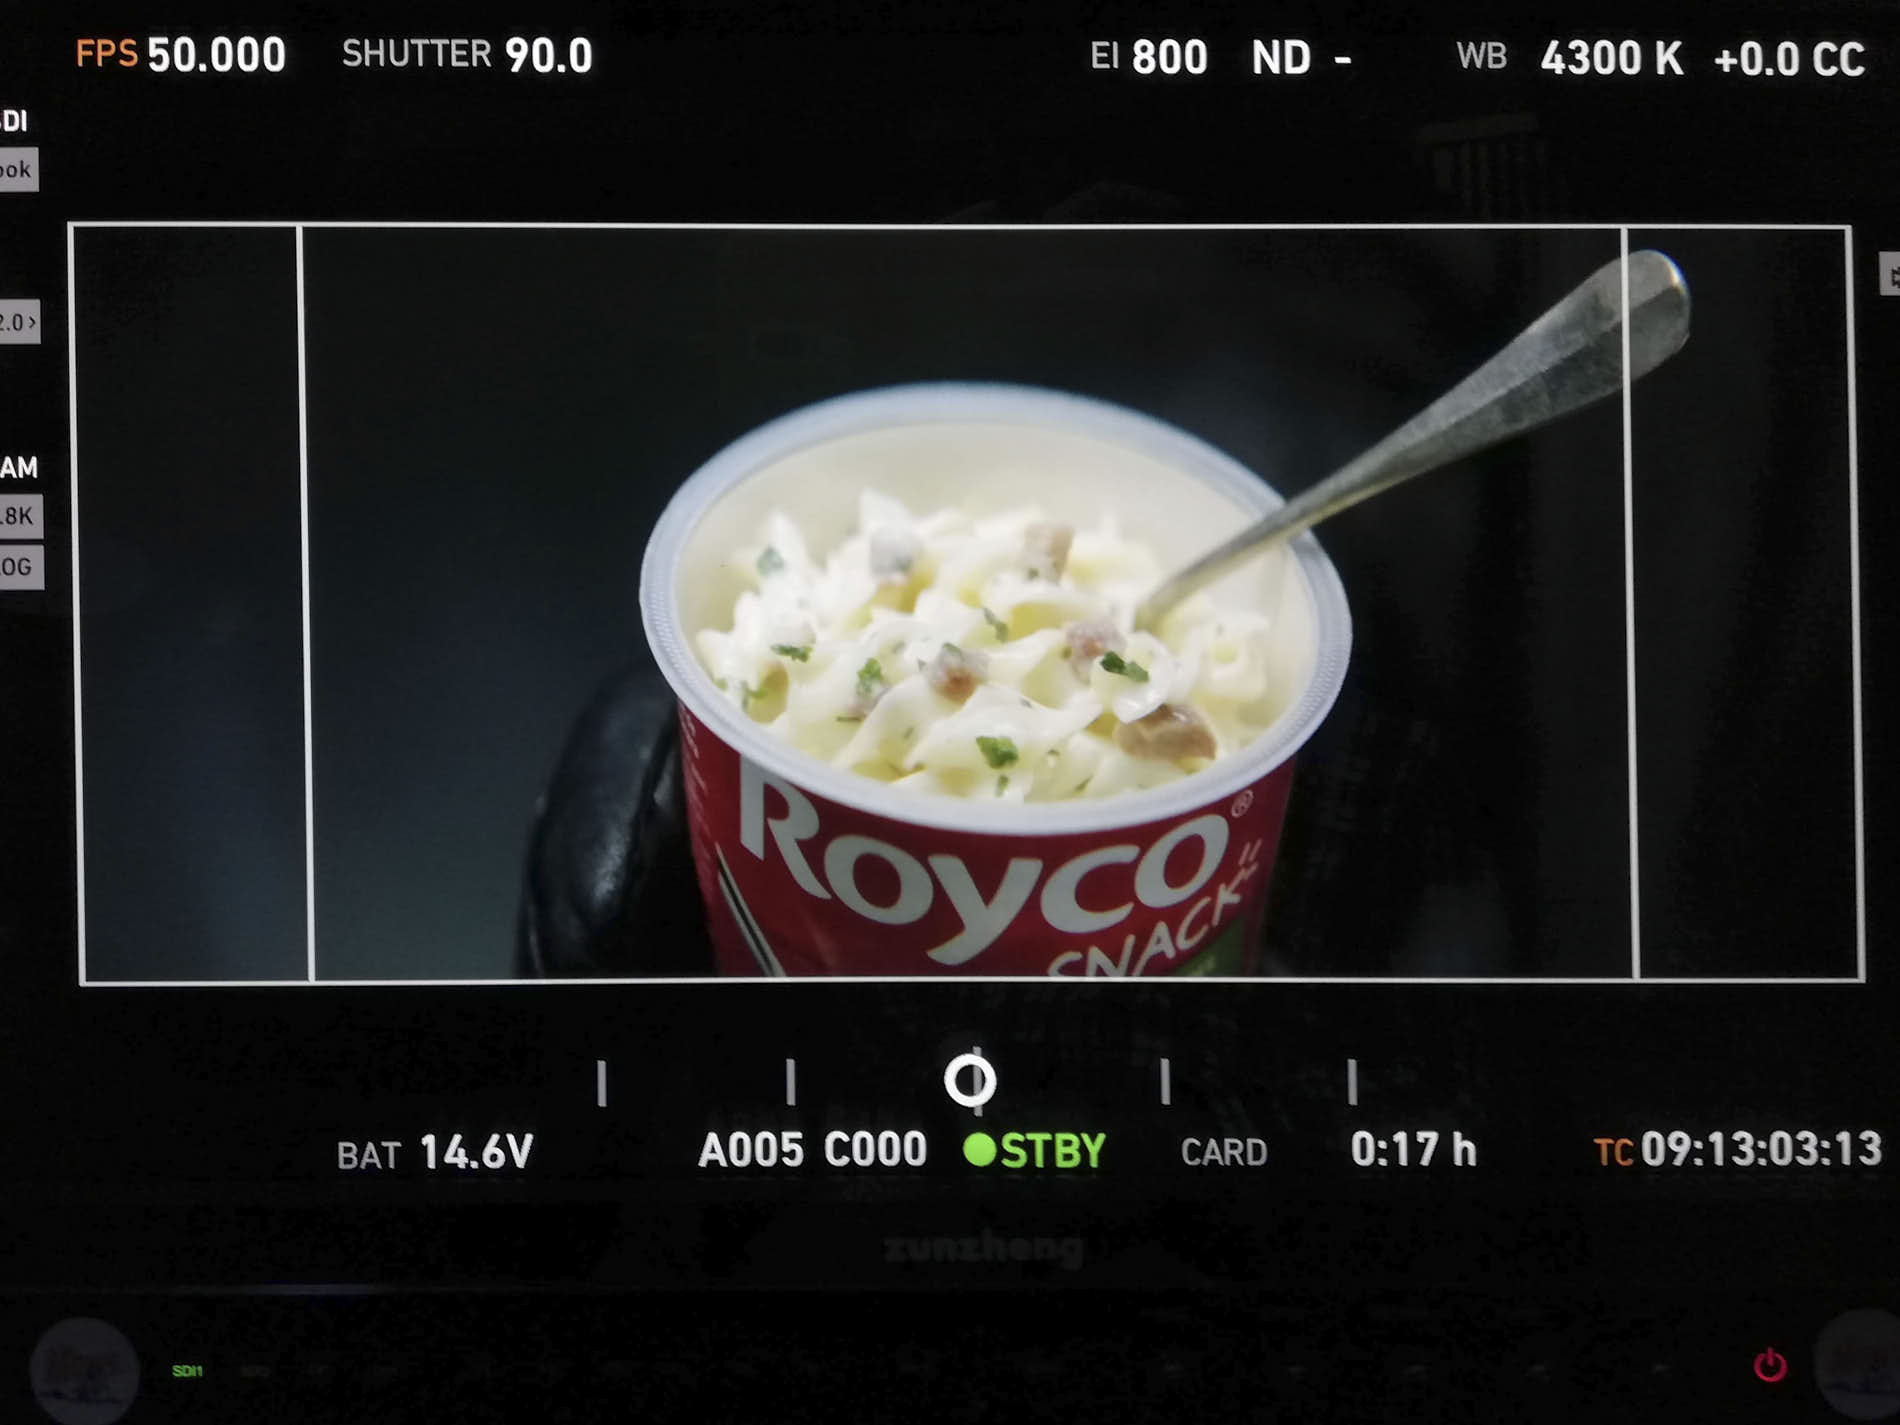 photo of a moviescreen with a close-up of royco snack carbonara